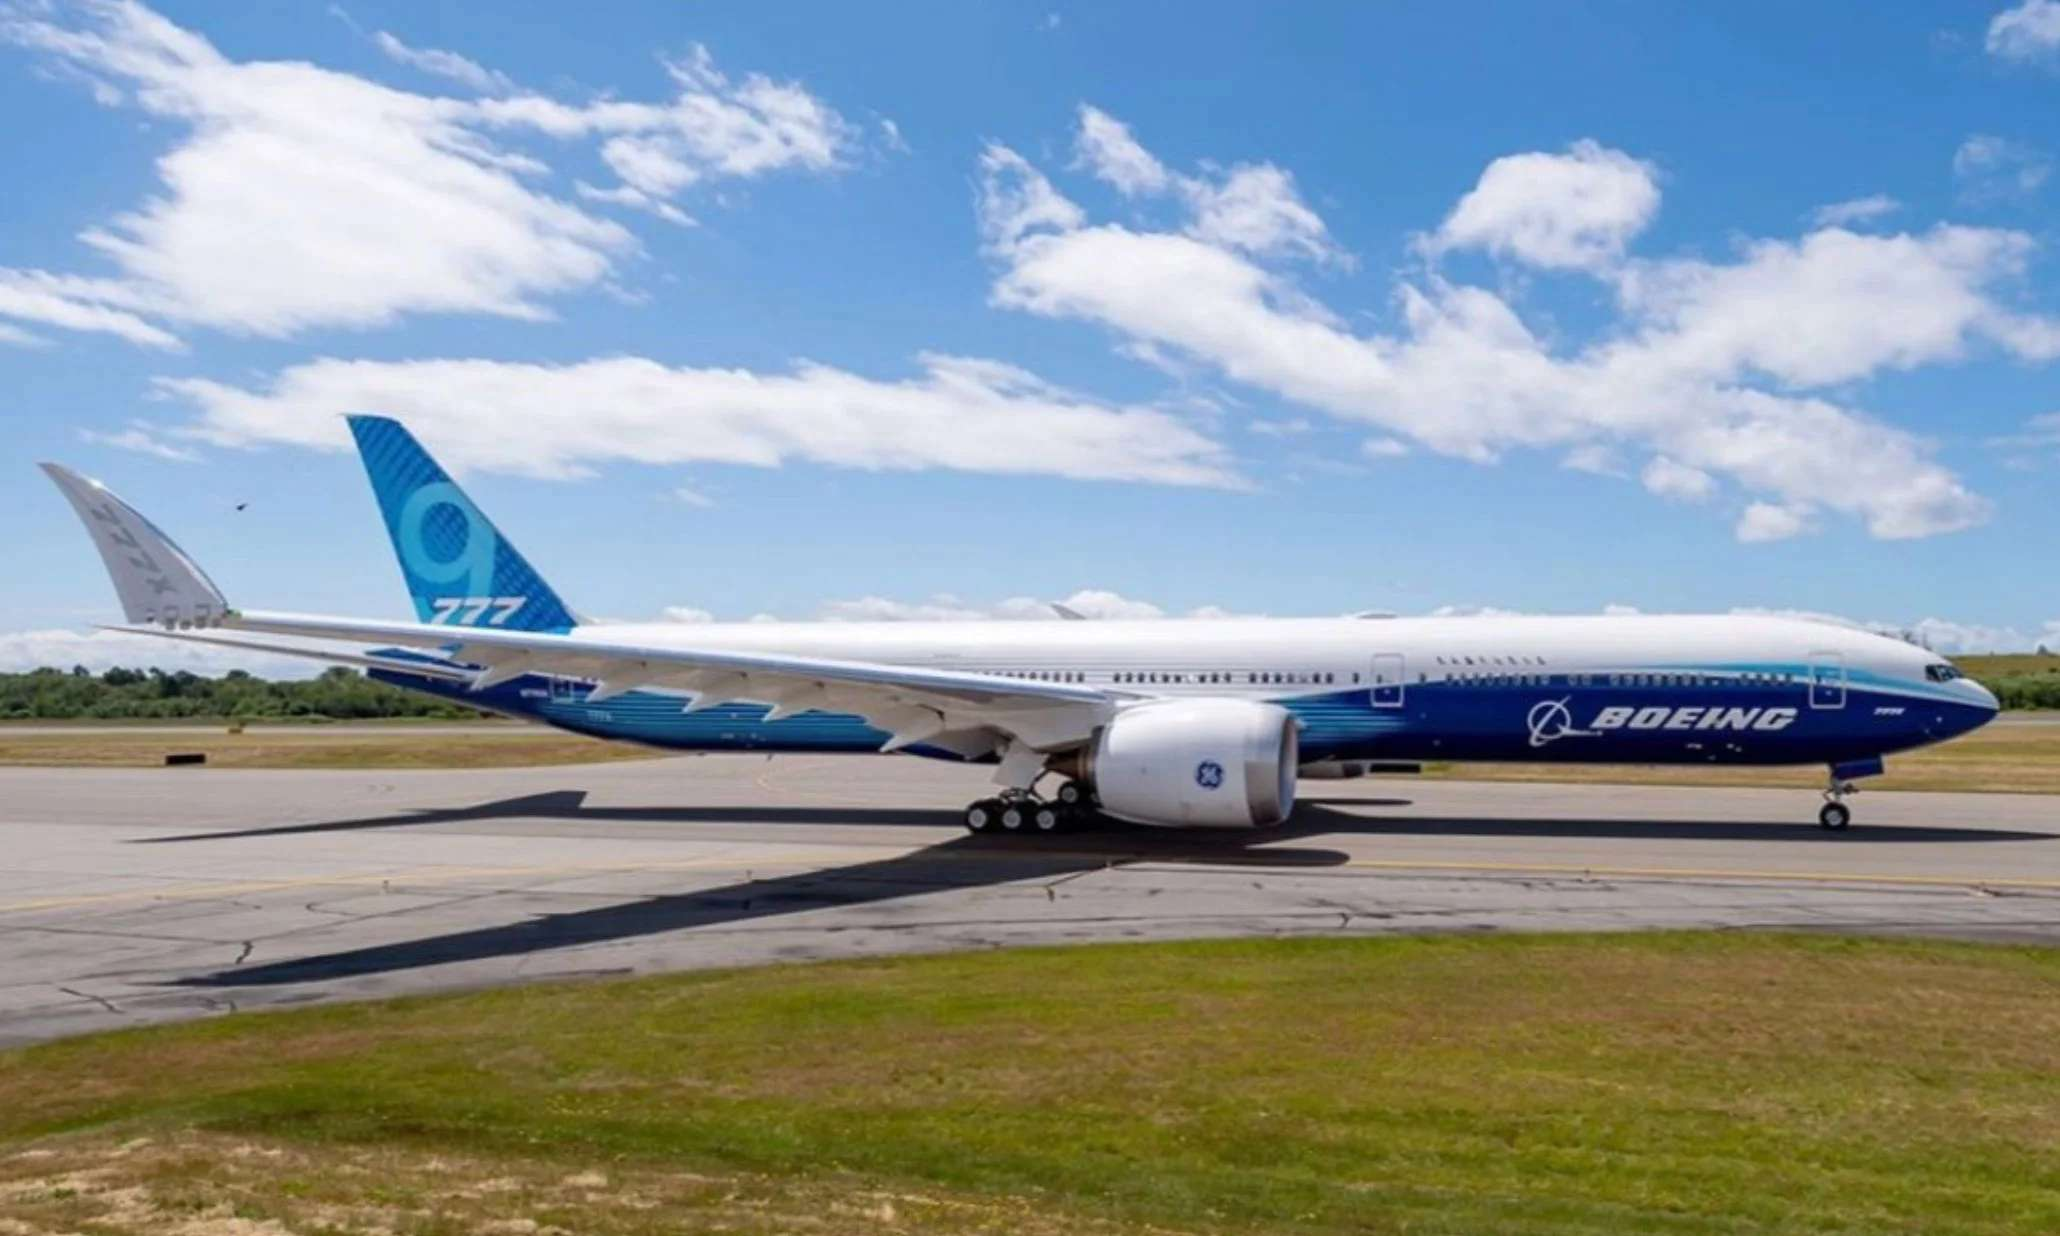 The Boeing 777X. The folded wingtips are lowered prior to takeoff to form a blended, raked wingtip. (Photo courtesy of Boeing)